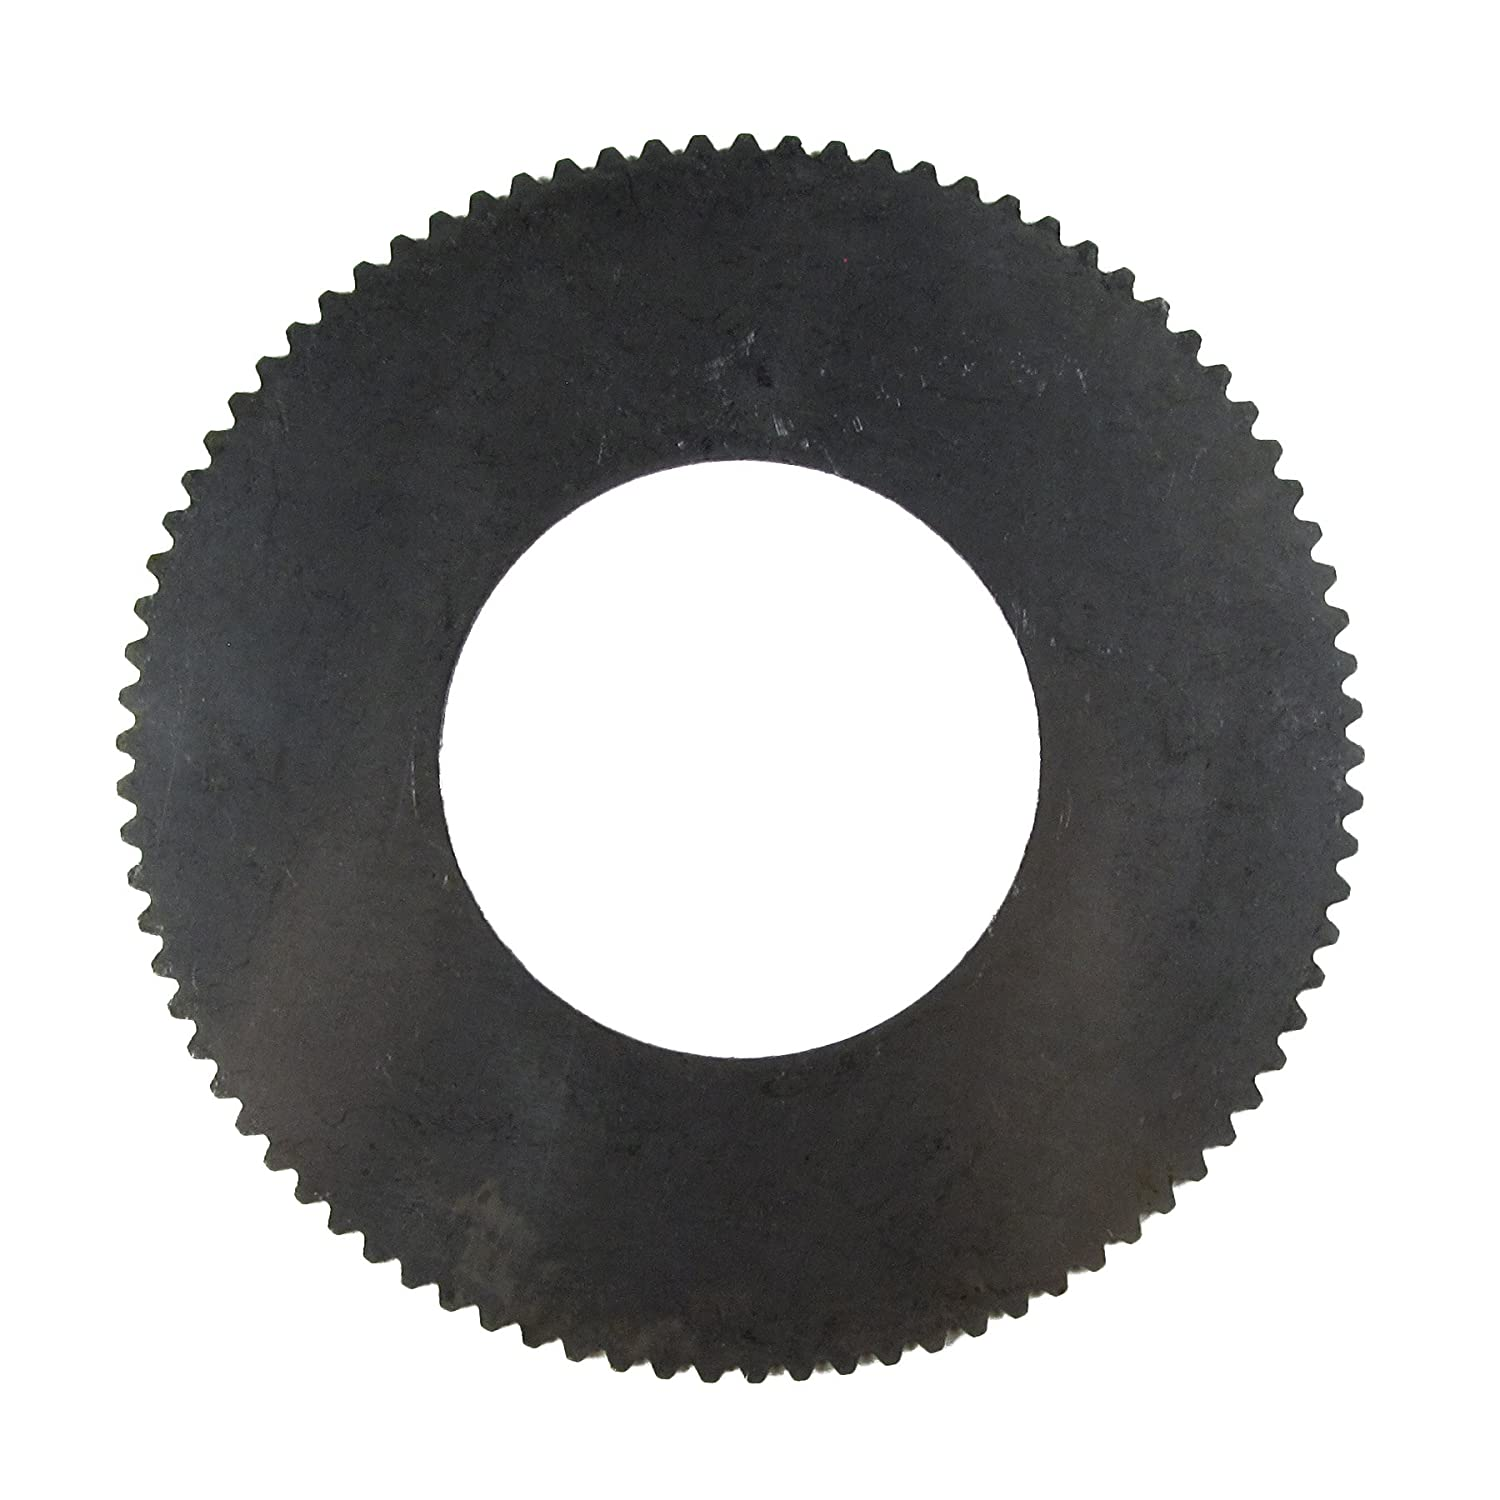 Ranking TOP9 Steel Clutch Credence J.I. CASE 381-922-539C1 306711 by Replaced # Alto